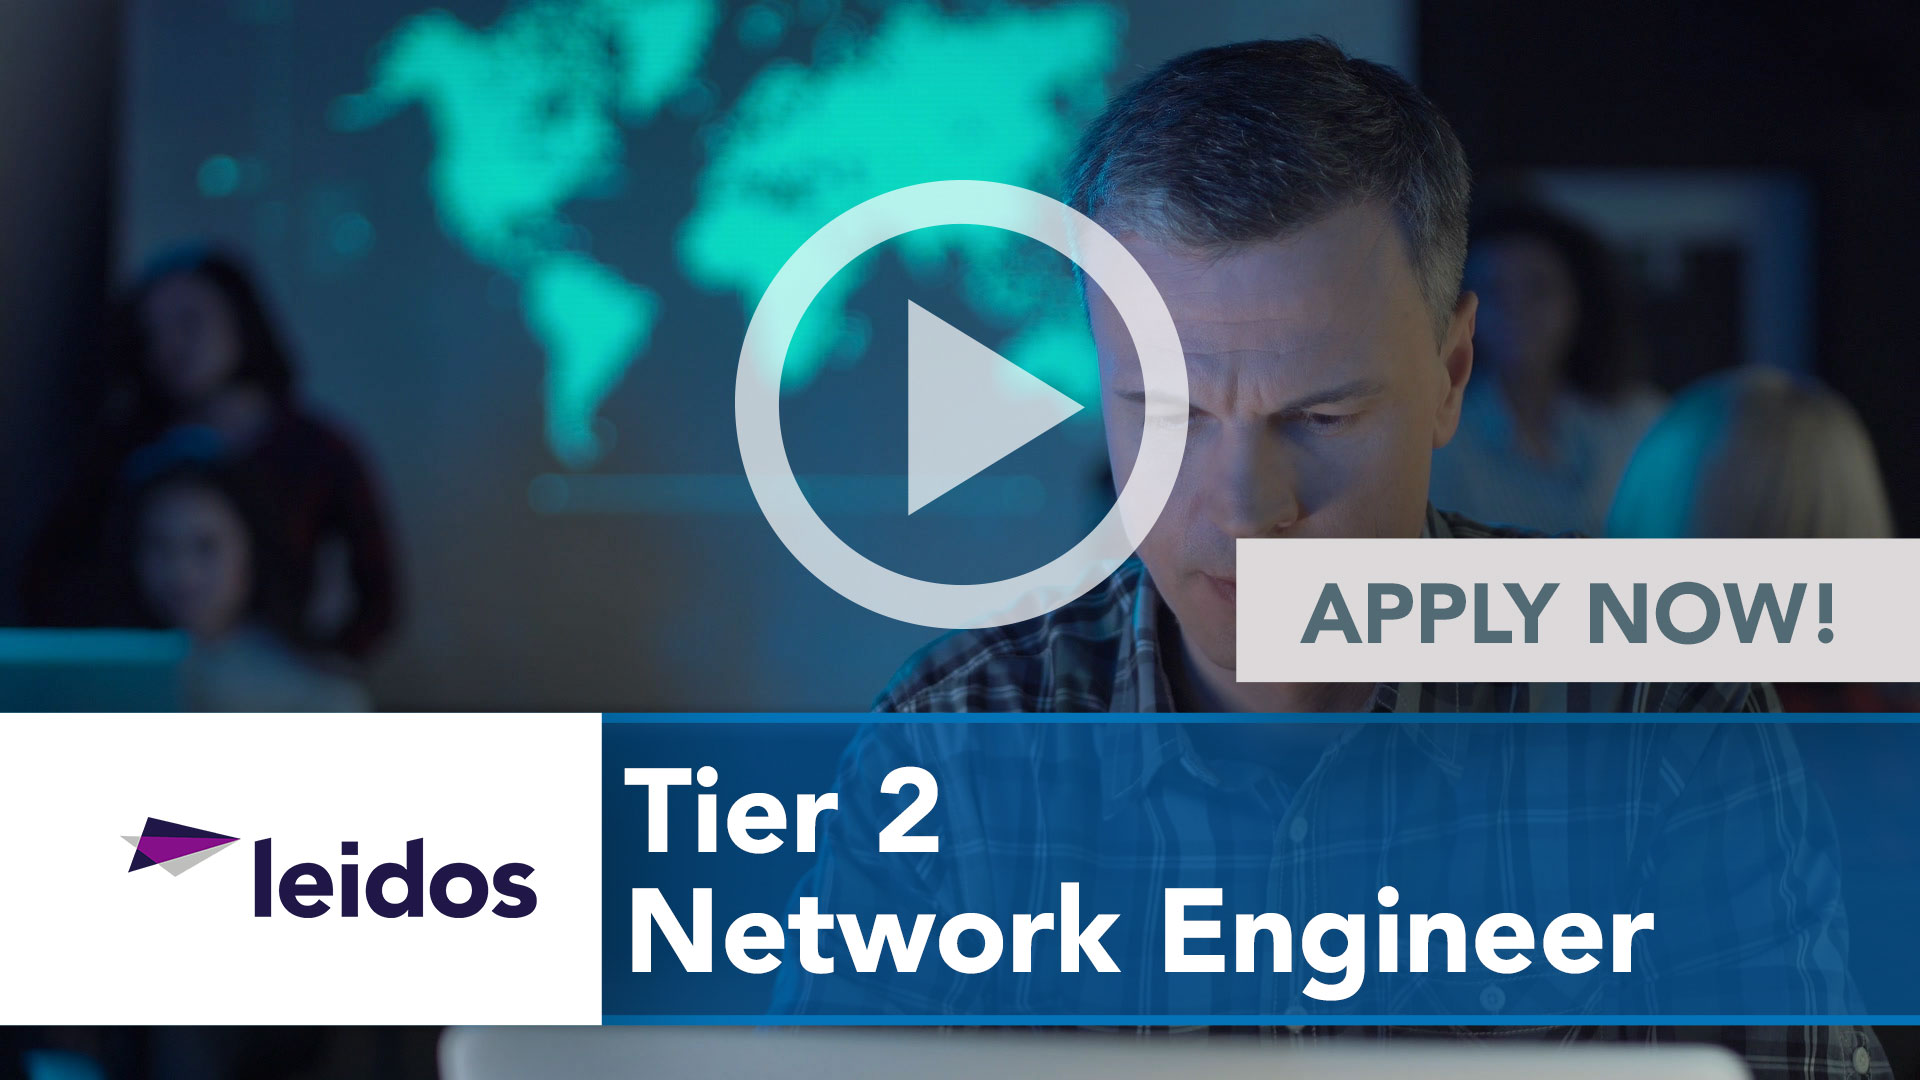 Watch our careers video for available job opening Tier 2 Network Engineer in National Capital Region with